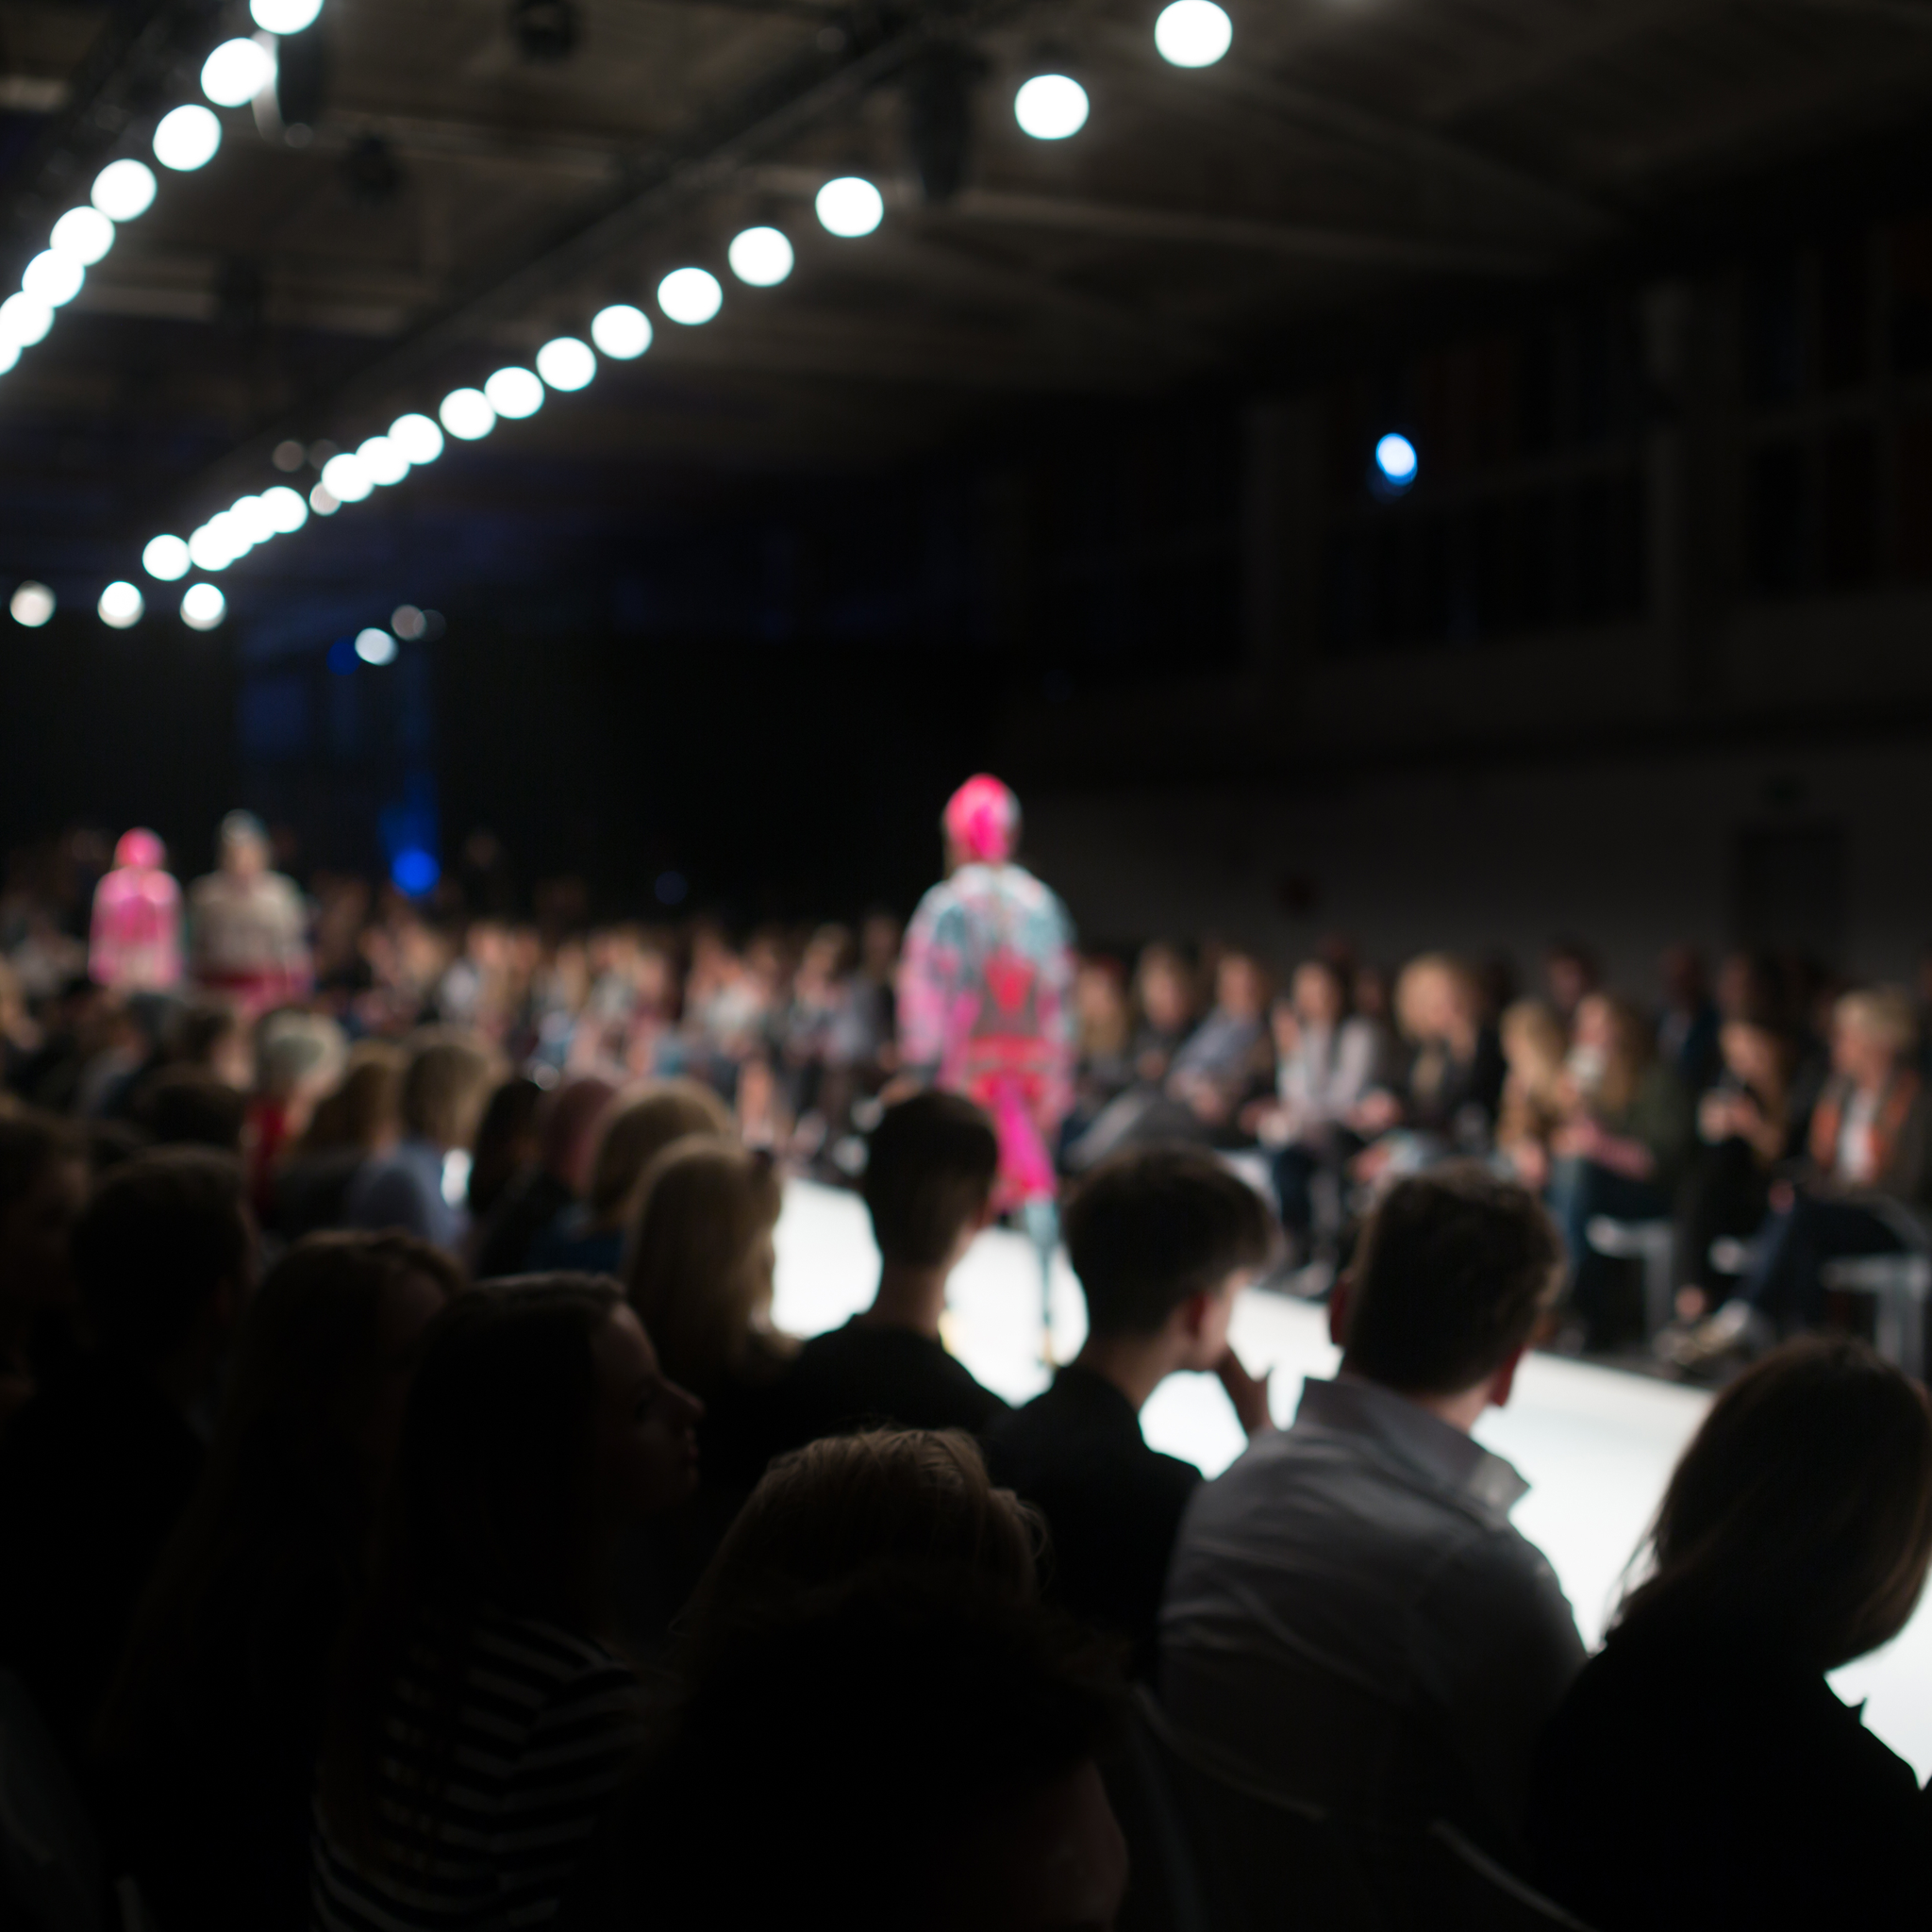 London Fashion Week 2019 - The Breakout event for aspiring designers